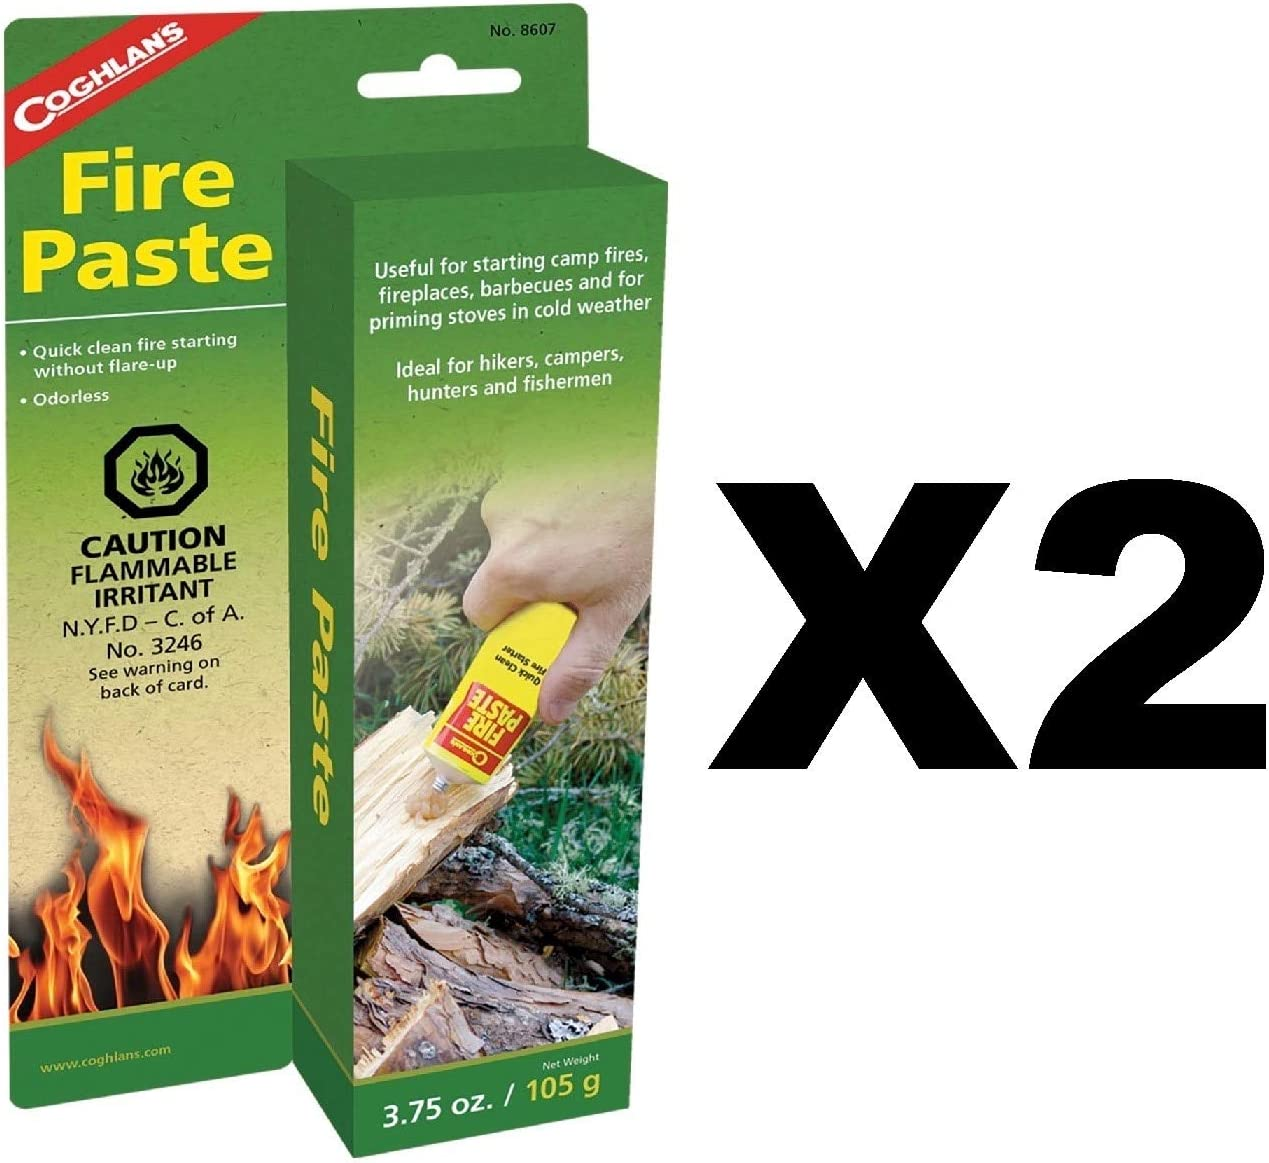 2PK Coghlans Fire Paste Emergency Survival Camping Fire Starters Odorless 3.75oz